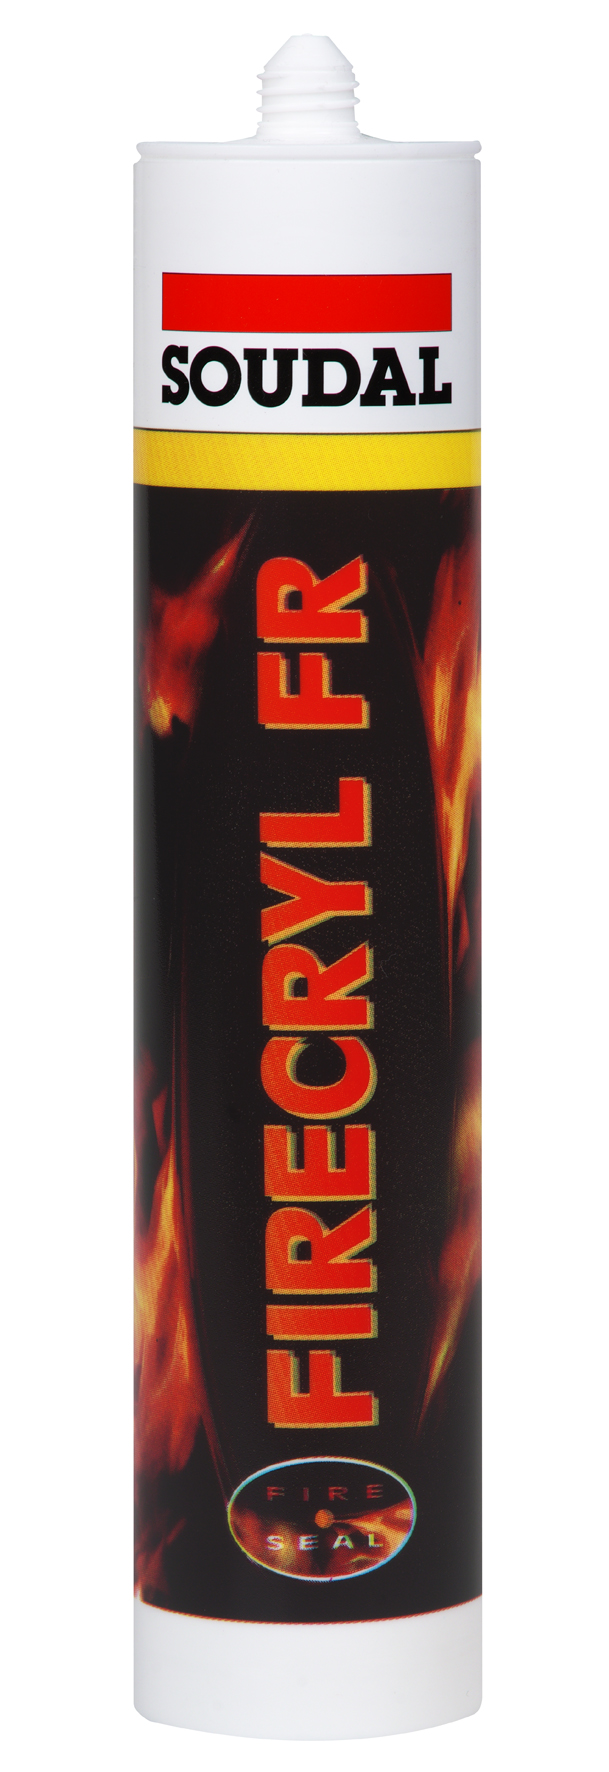 310ml Soudal Firecryl  Brandwerende Kit